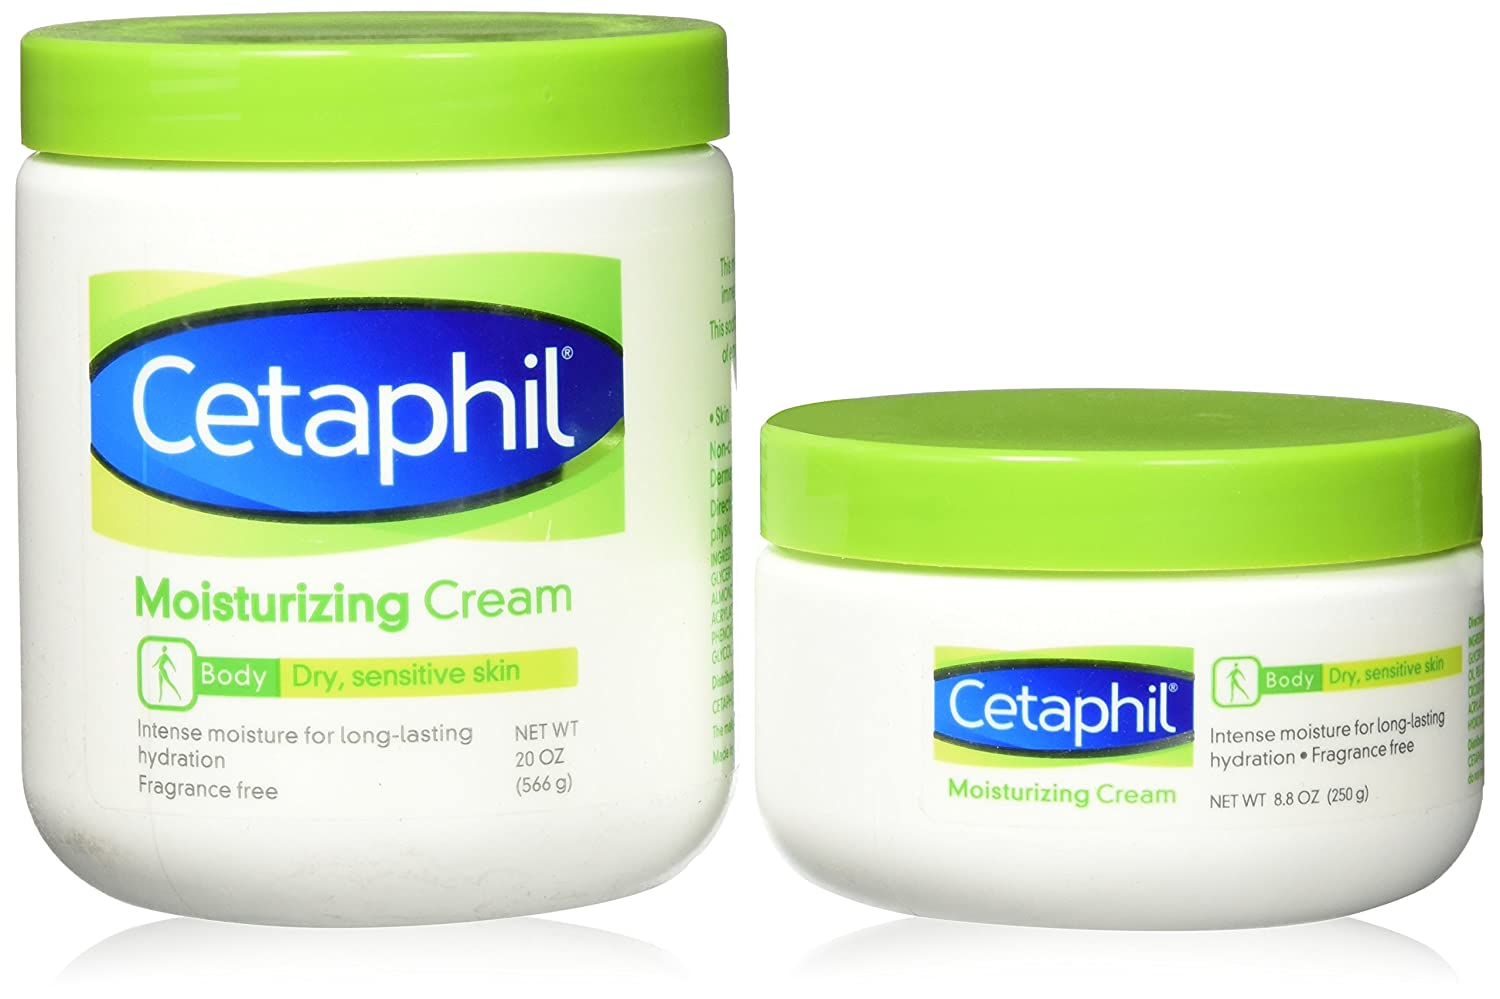 daf5bef32decb Amazon.com   Cetaphil Cream - 2 Pack - 28.8 Oz Total - 20 Oz Jar and 8.8 Oz  Jar (Perfect for Travel)   Beauty